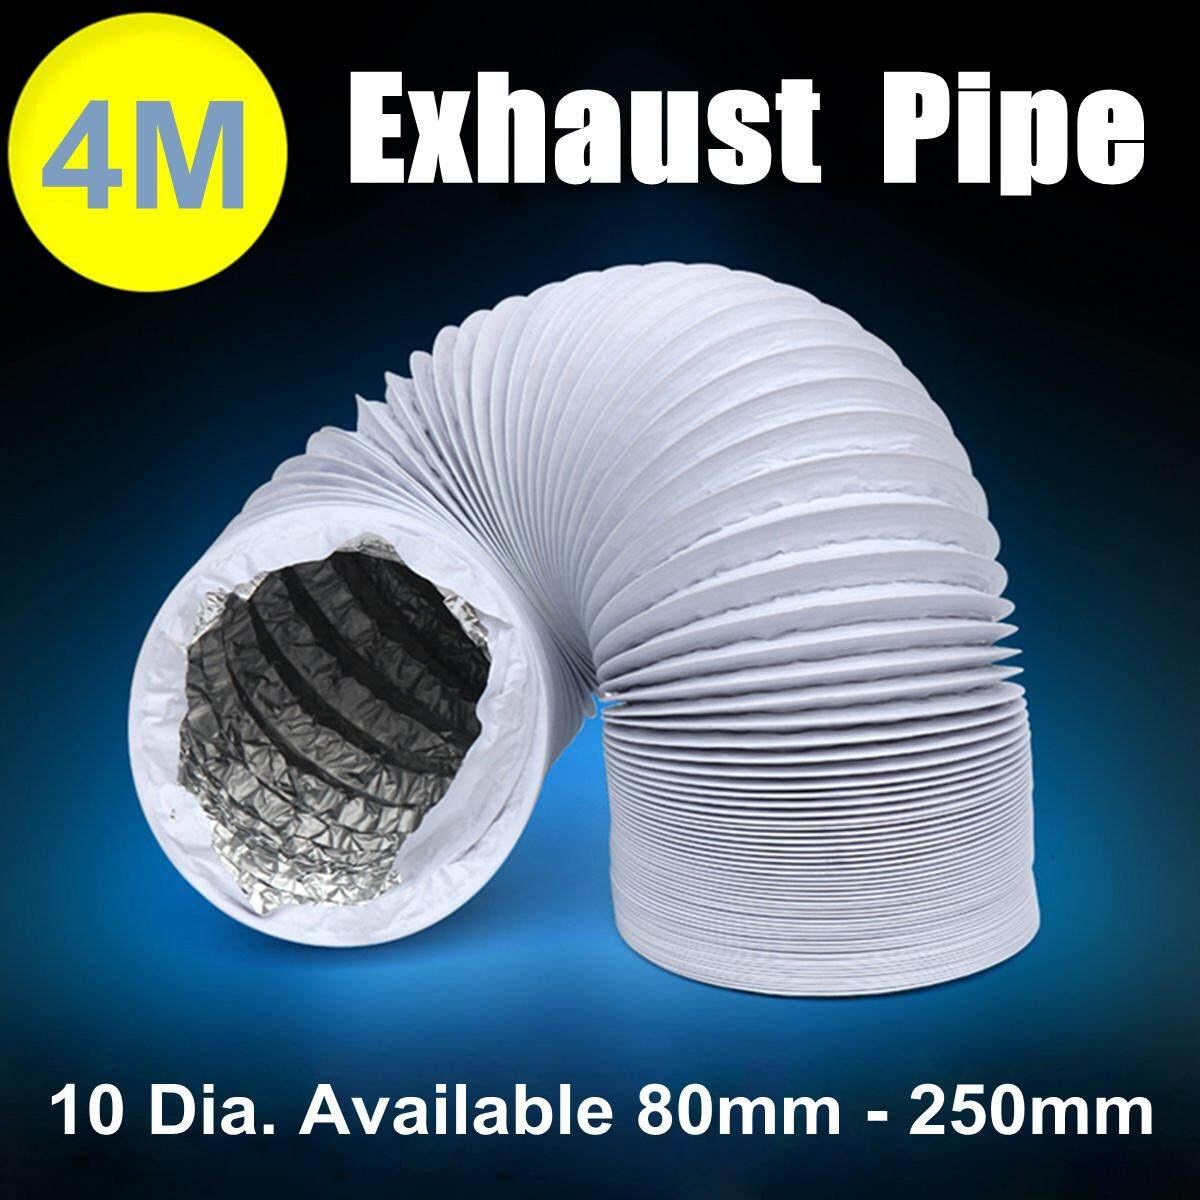 4m Flexible Air Conditioner Spare Parts Exhaust Pipe Vent Hose Outlet  125mm By Glimmer.